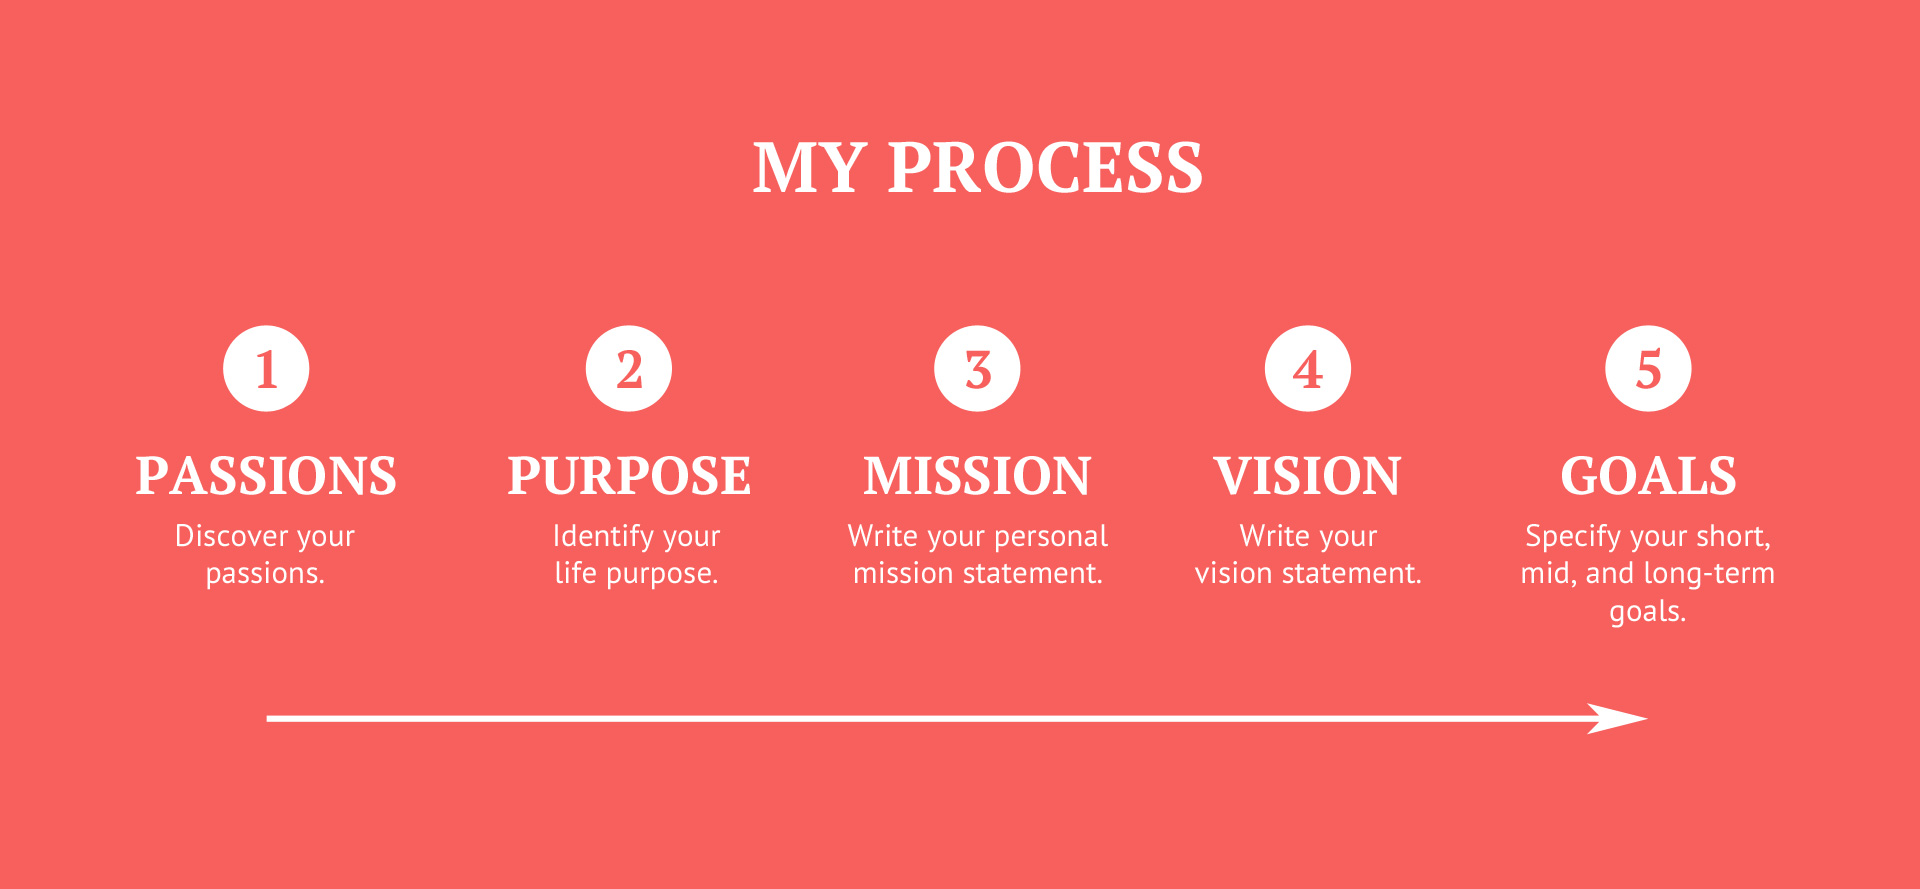 how to discover your true potential and purpose throughout the process i will show you why working through the process in this order makes sense and how each point aligns in order to form a clearer big